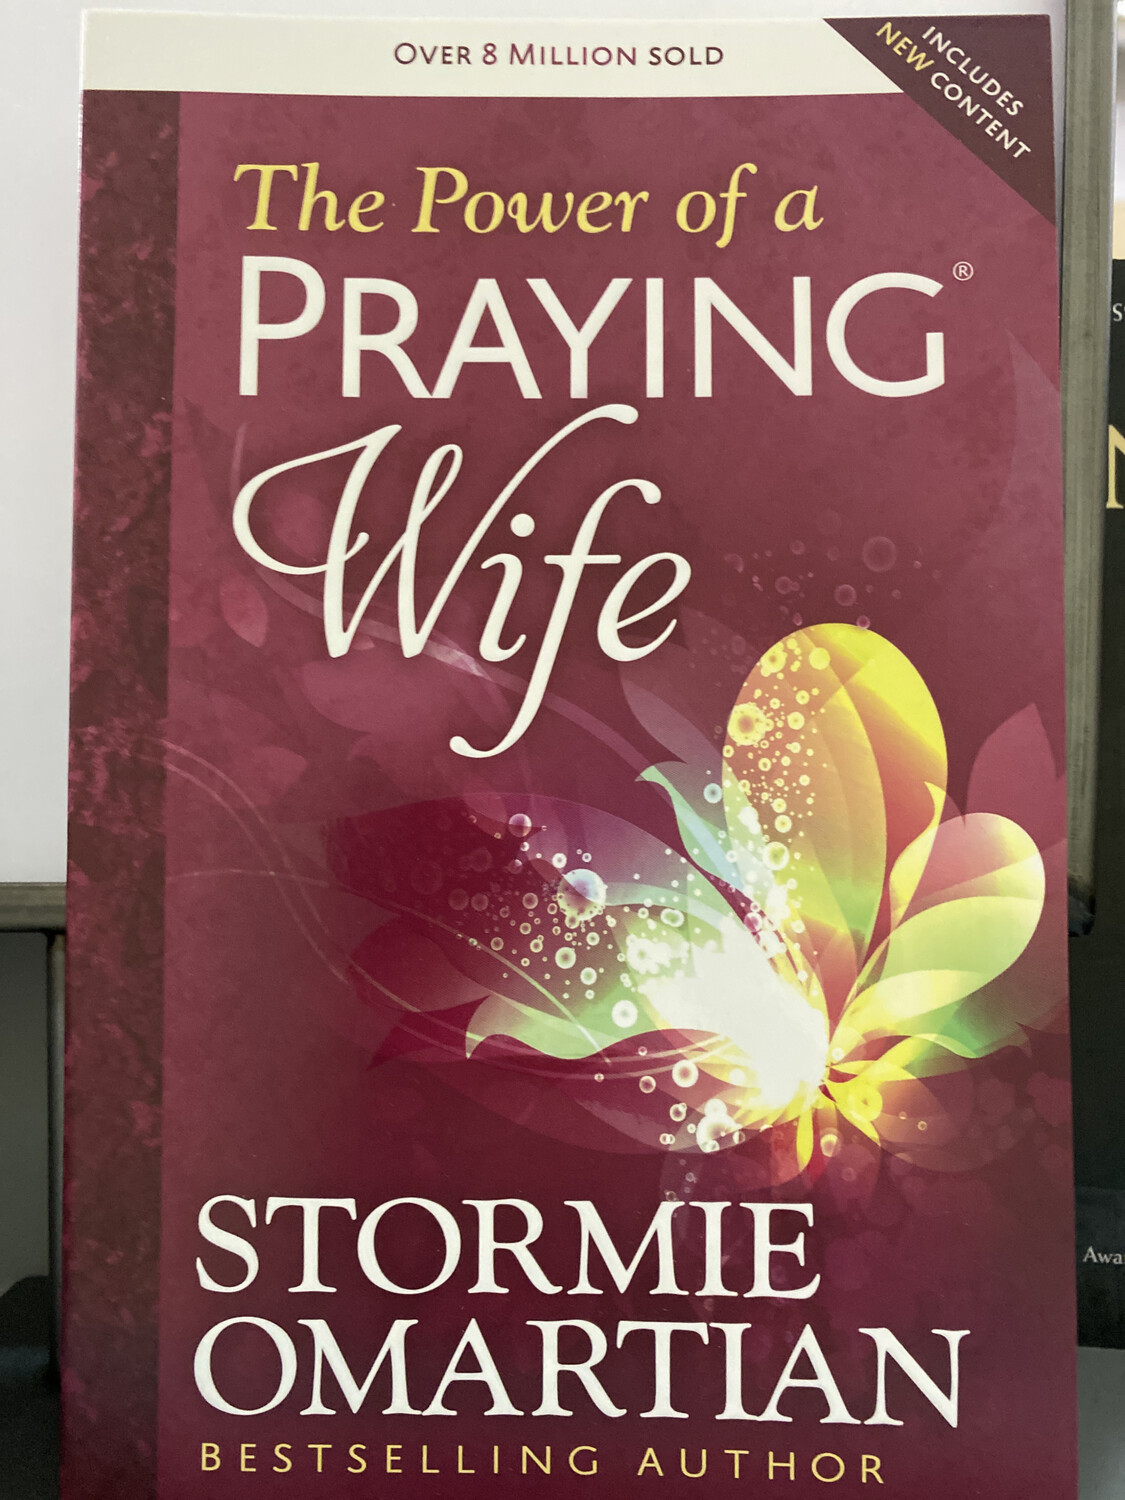 OMARTIAN, The Power Of A Praying Wife